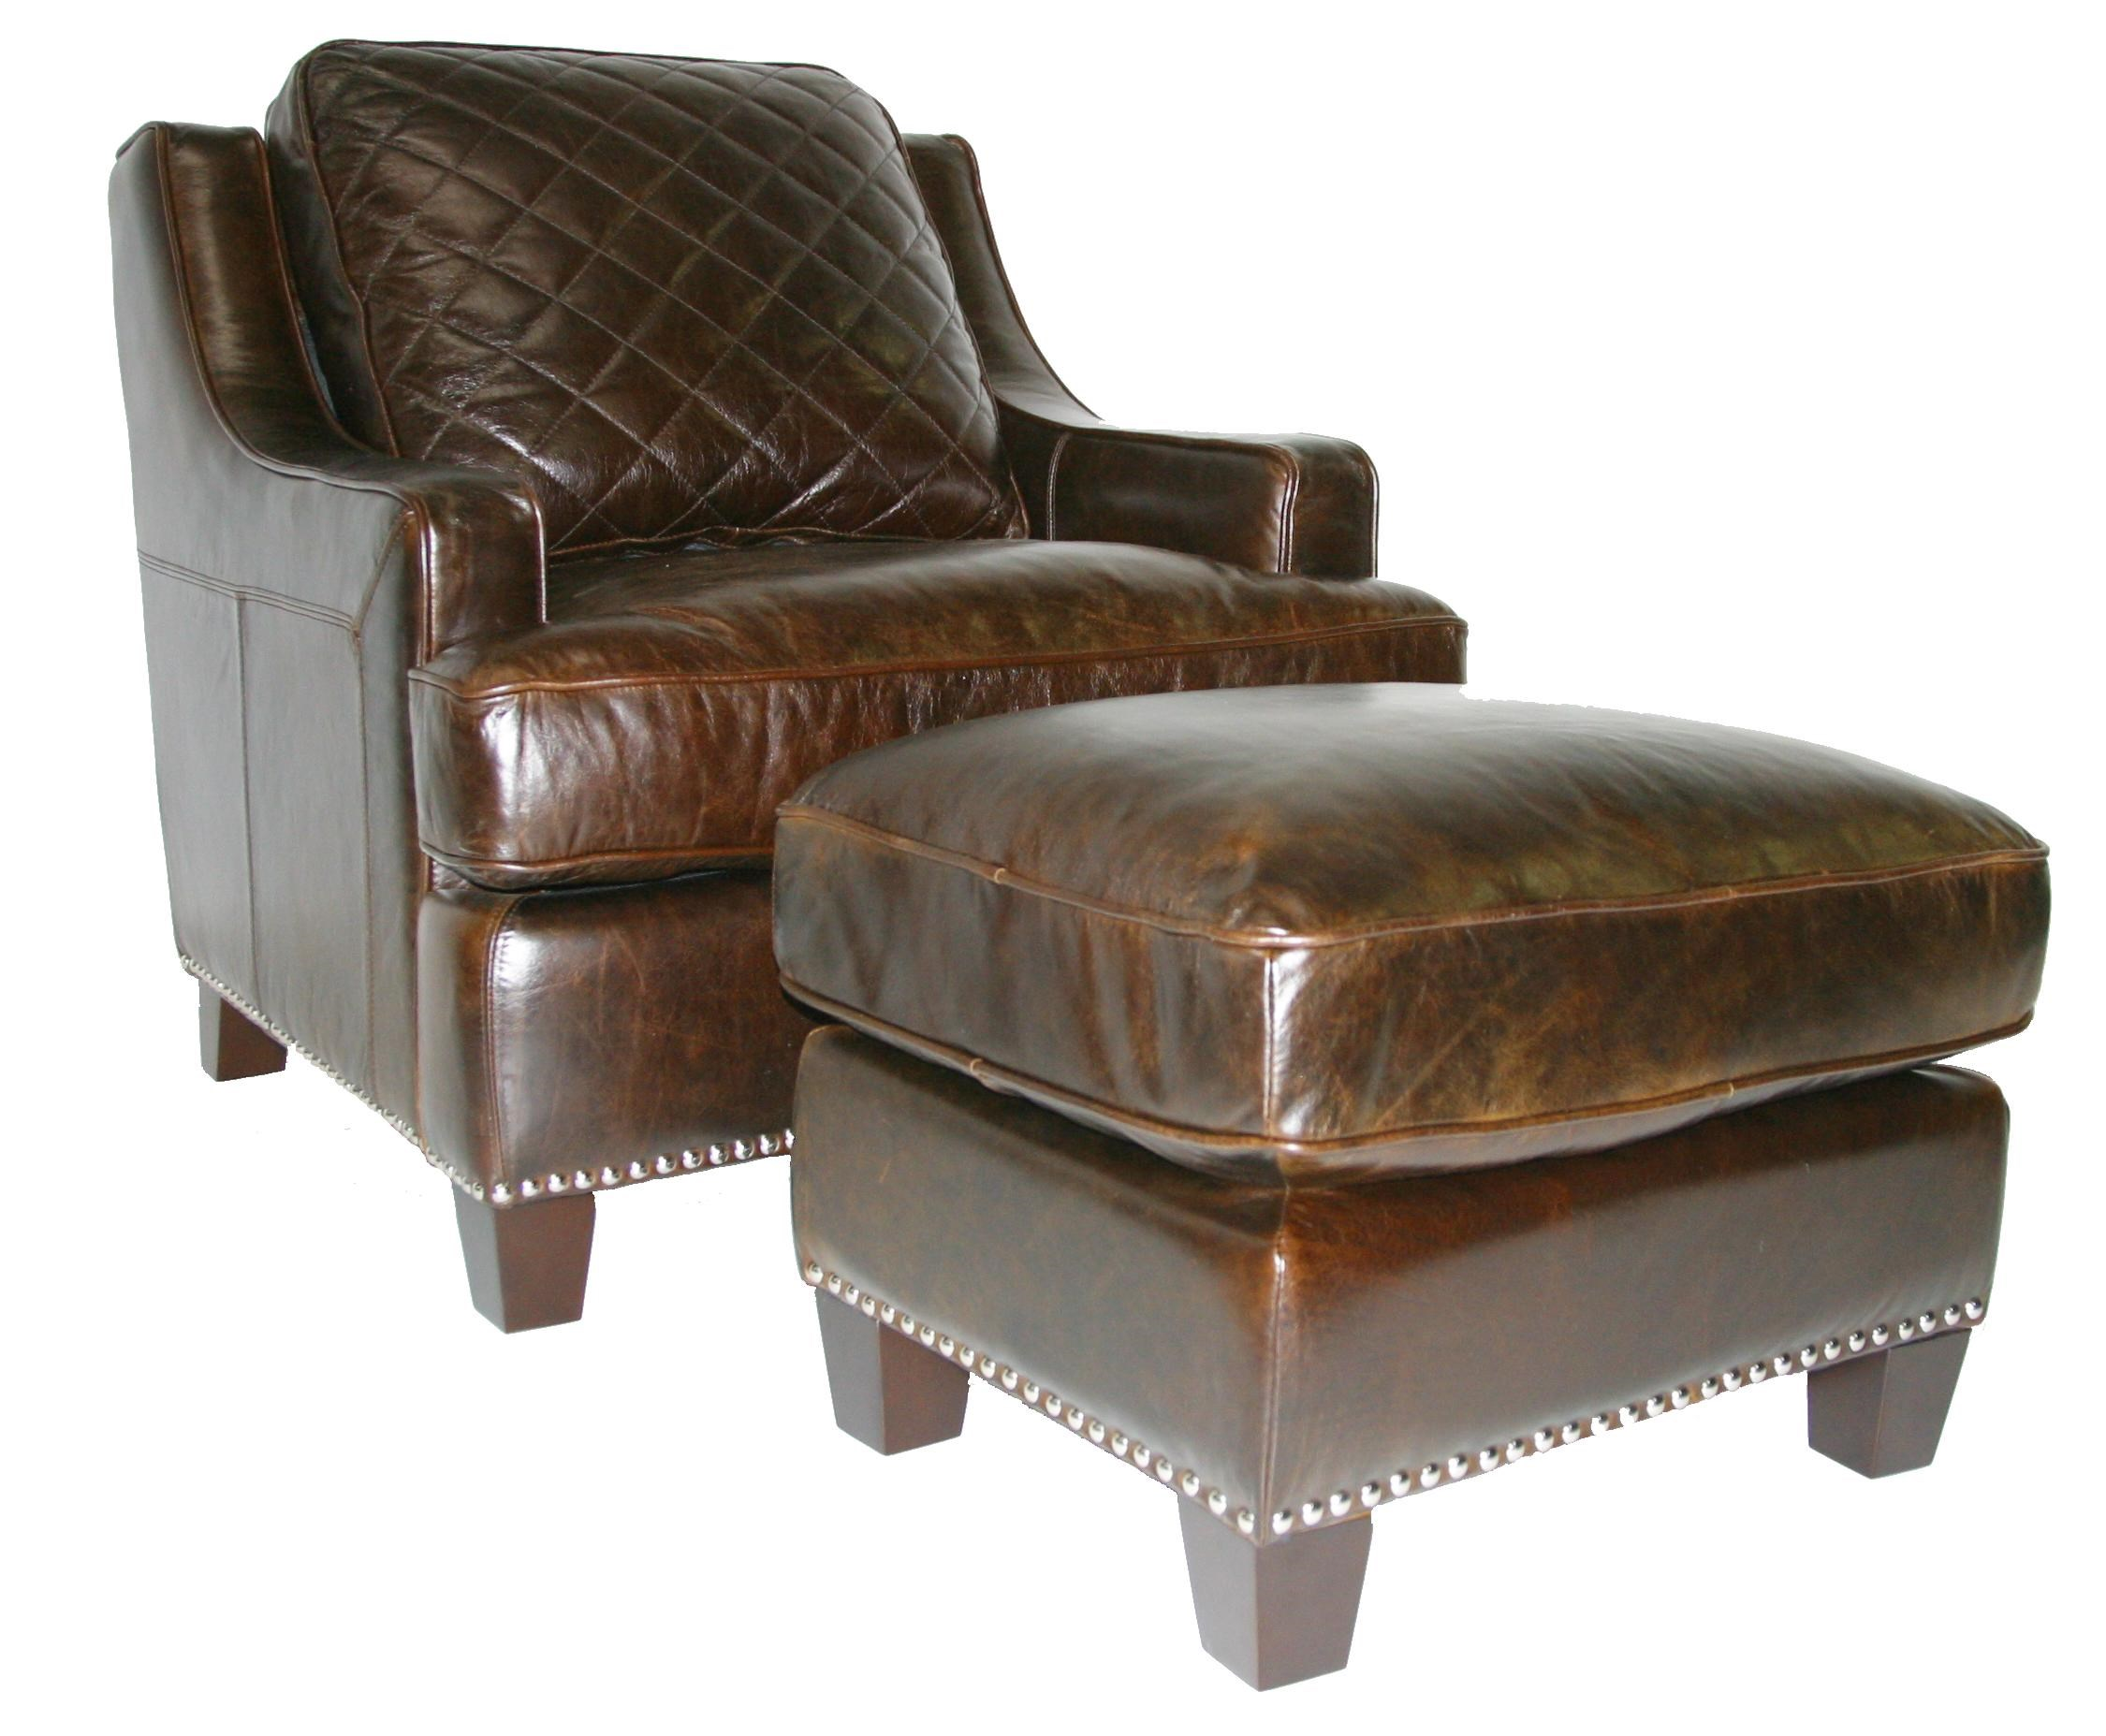 leather chair ottoman set rail height italia usa provo stitched